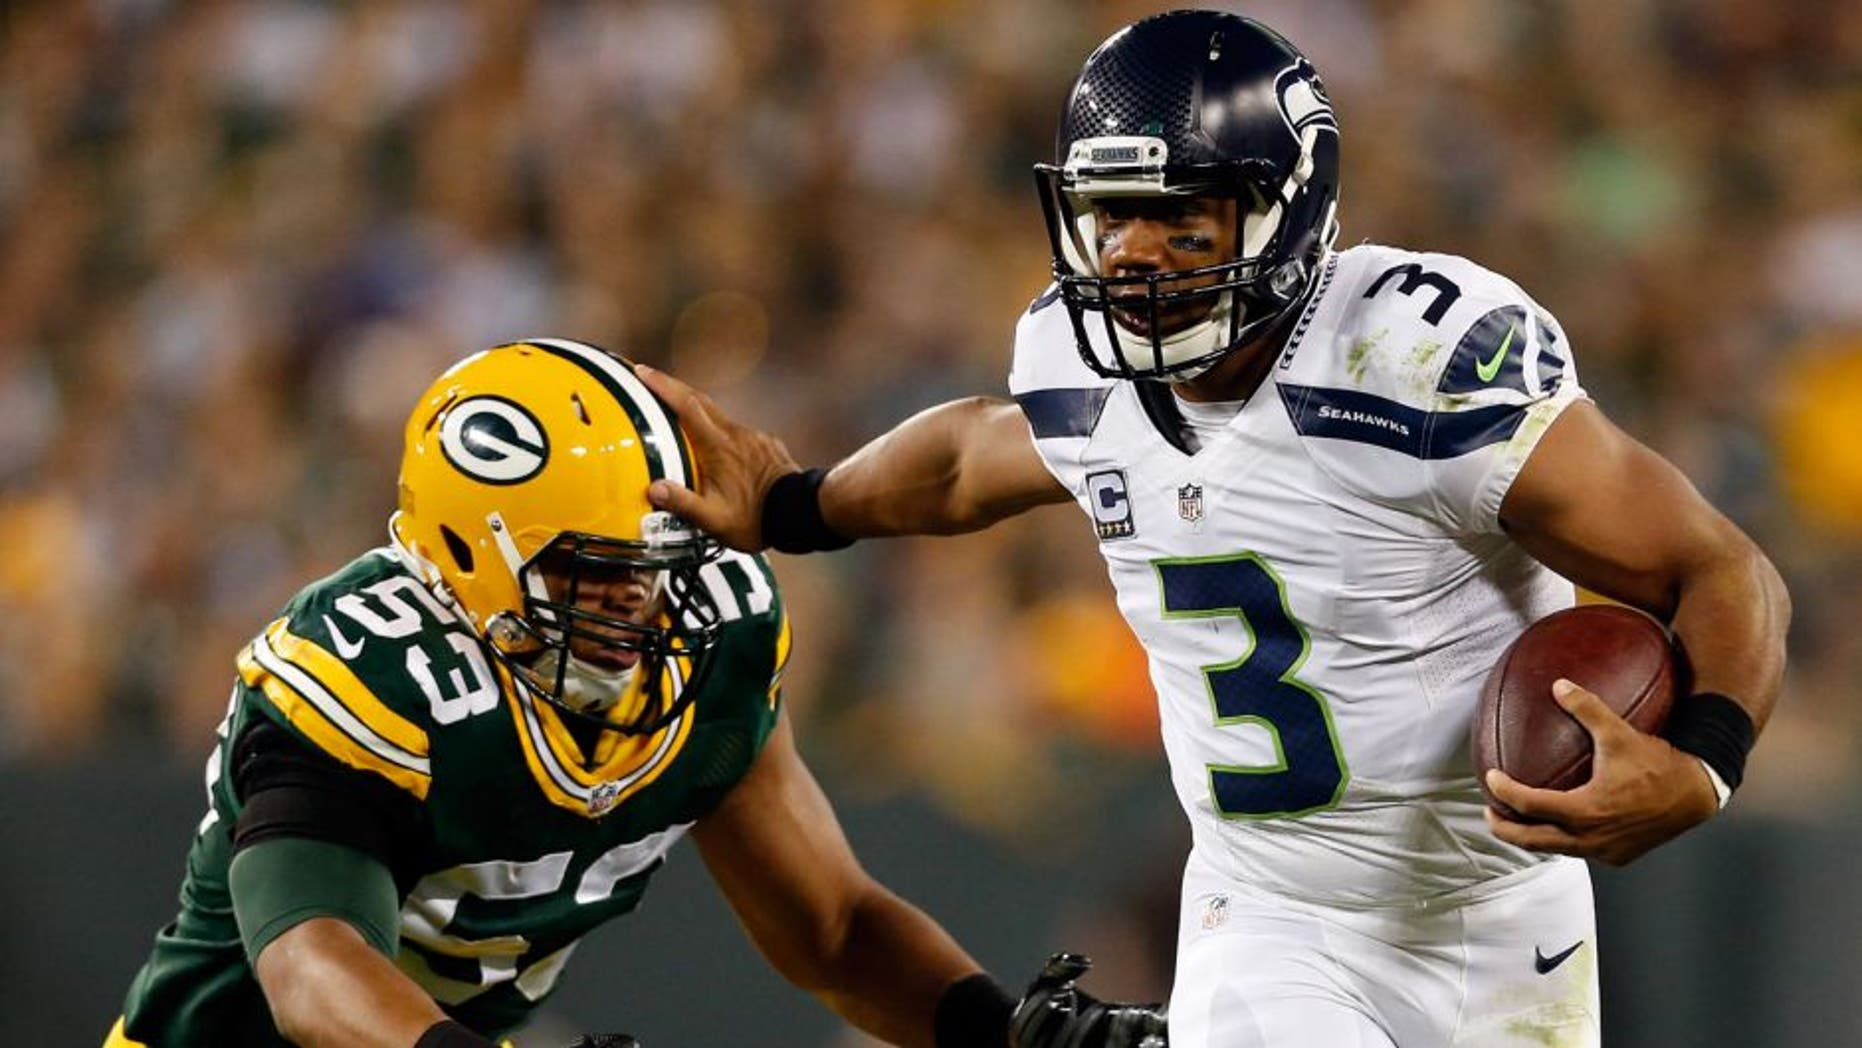 GREEN BAY, WI - SEPTEMBER 20: Russell Wilson #3 of the Seattle Seahawks stiff arms Nick Perry #53 of the Green Bay Packers during the third quarter in their game at Lambeau Field on September 20, 2015 in Green Bay, Wisconsin. (Photo by Christian Petersen/Getty Images)